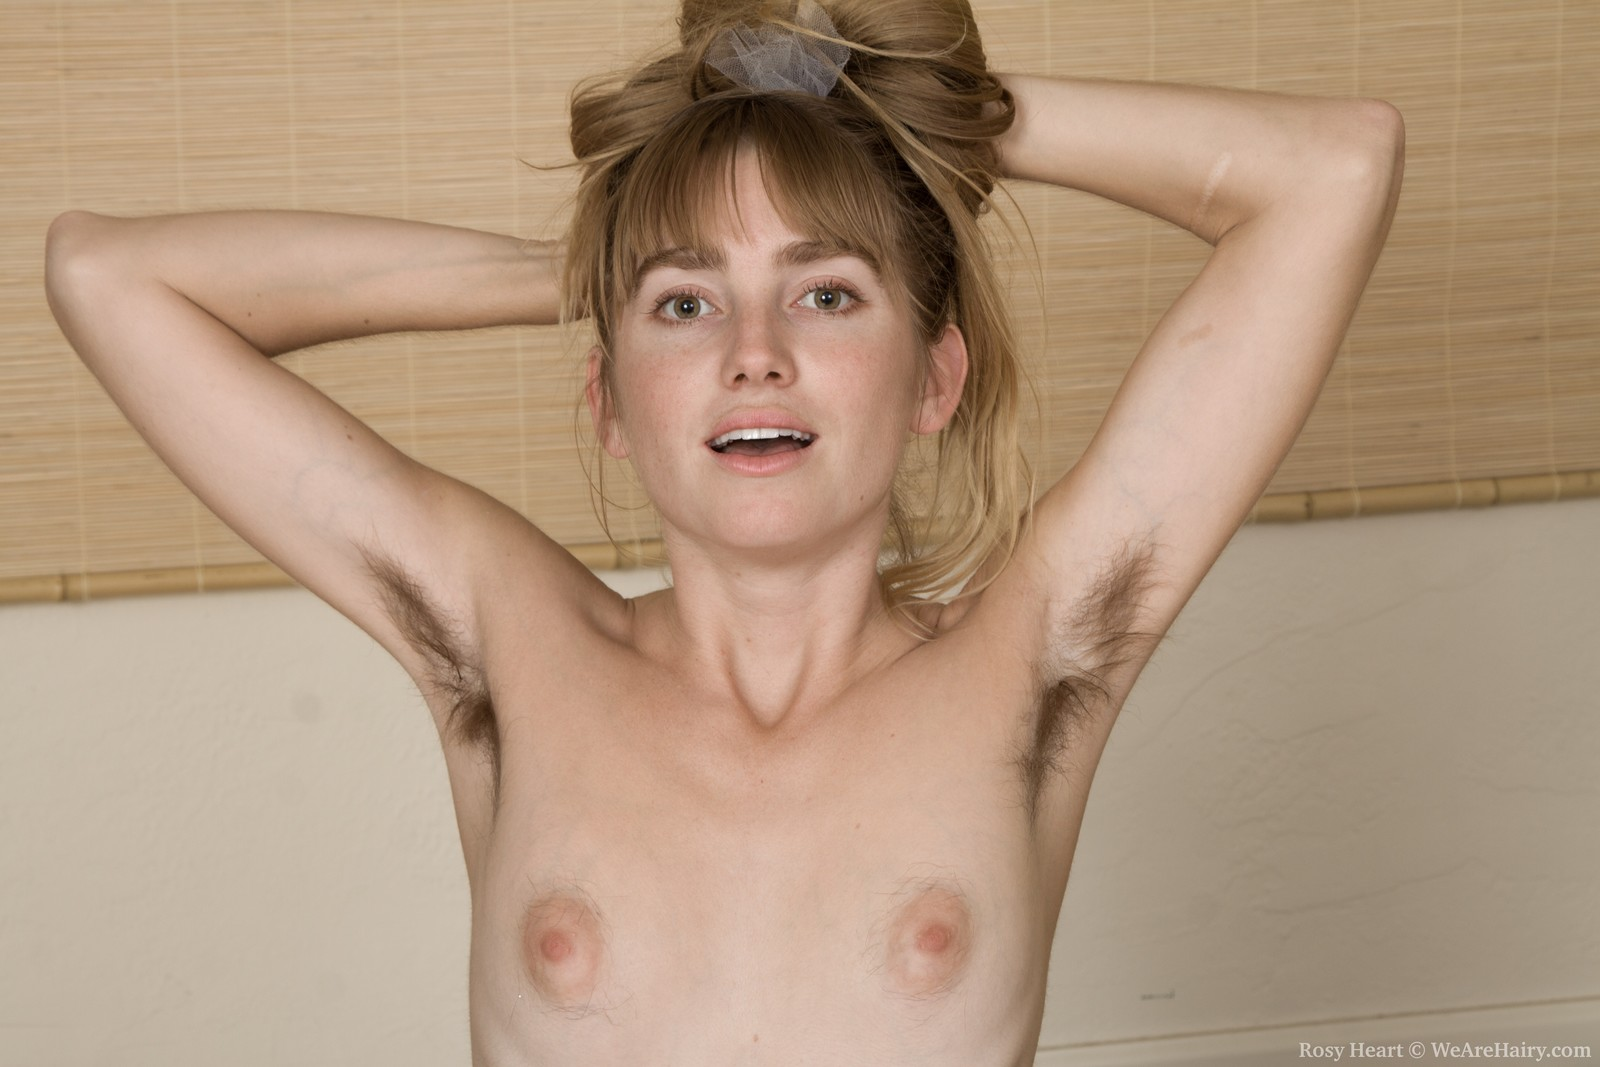 Naked images of creampie woman